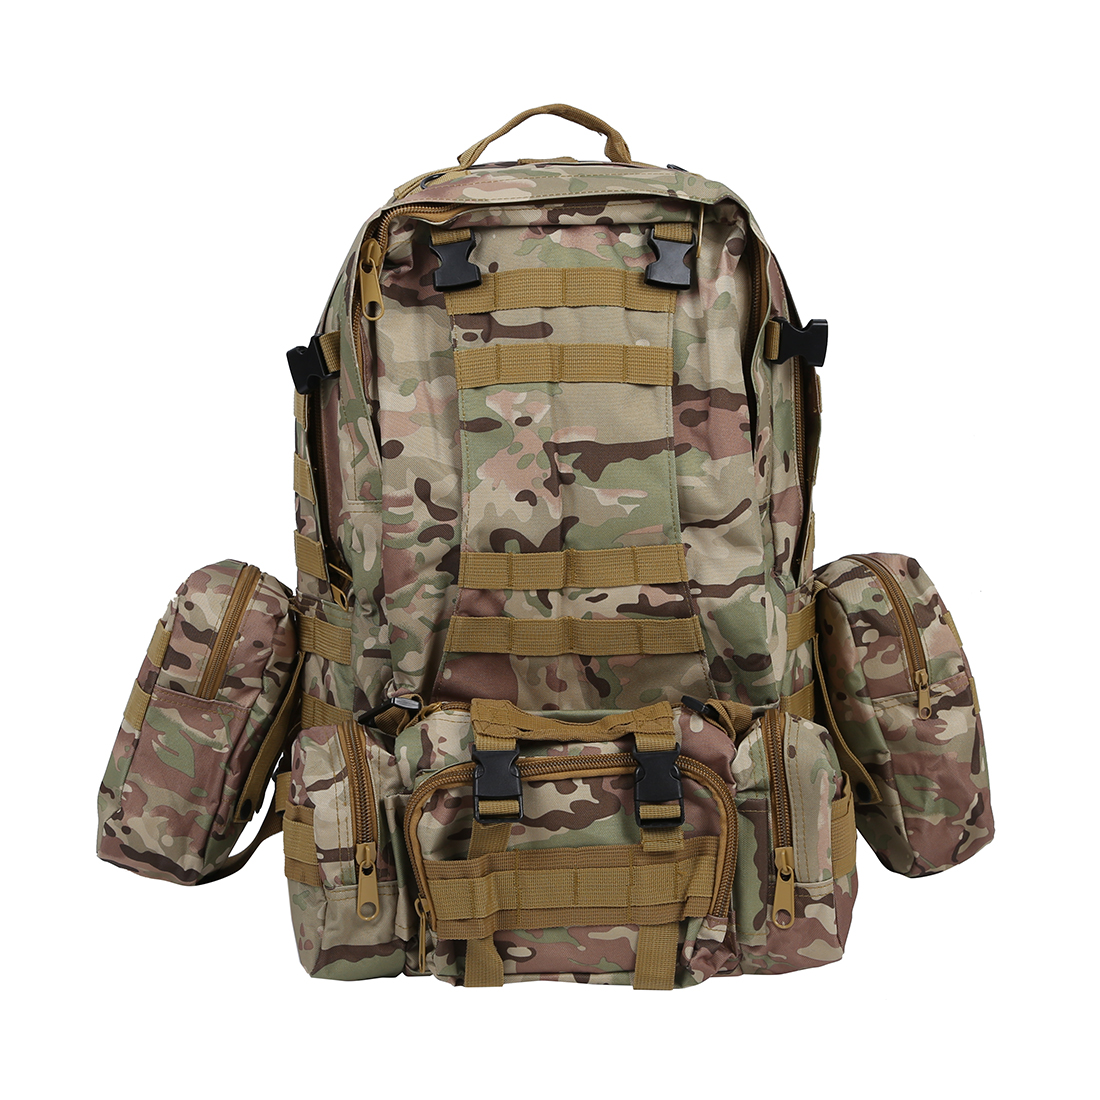 a3cd4dfcedbd 50 L 3 Day Assault Tactical Outdoor Military Rucksacks Backpack Camping bag  - CP Camouflage